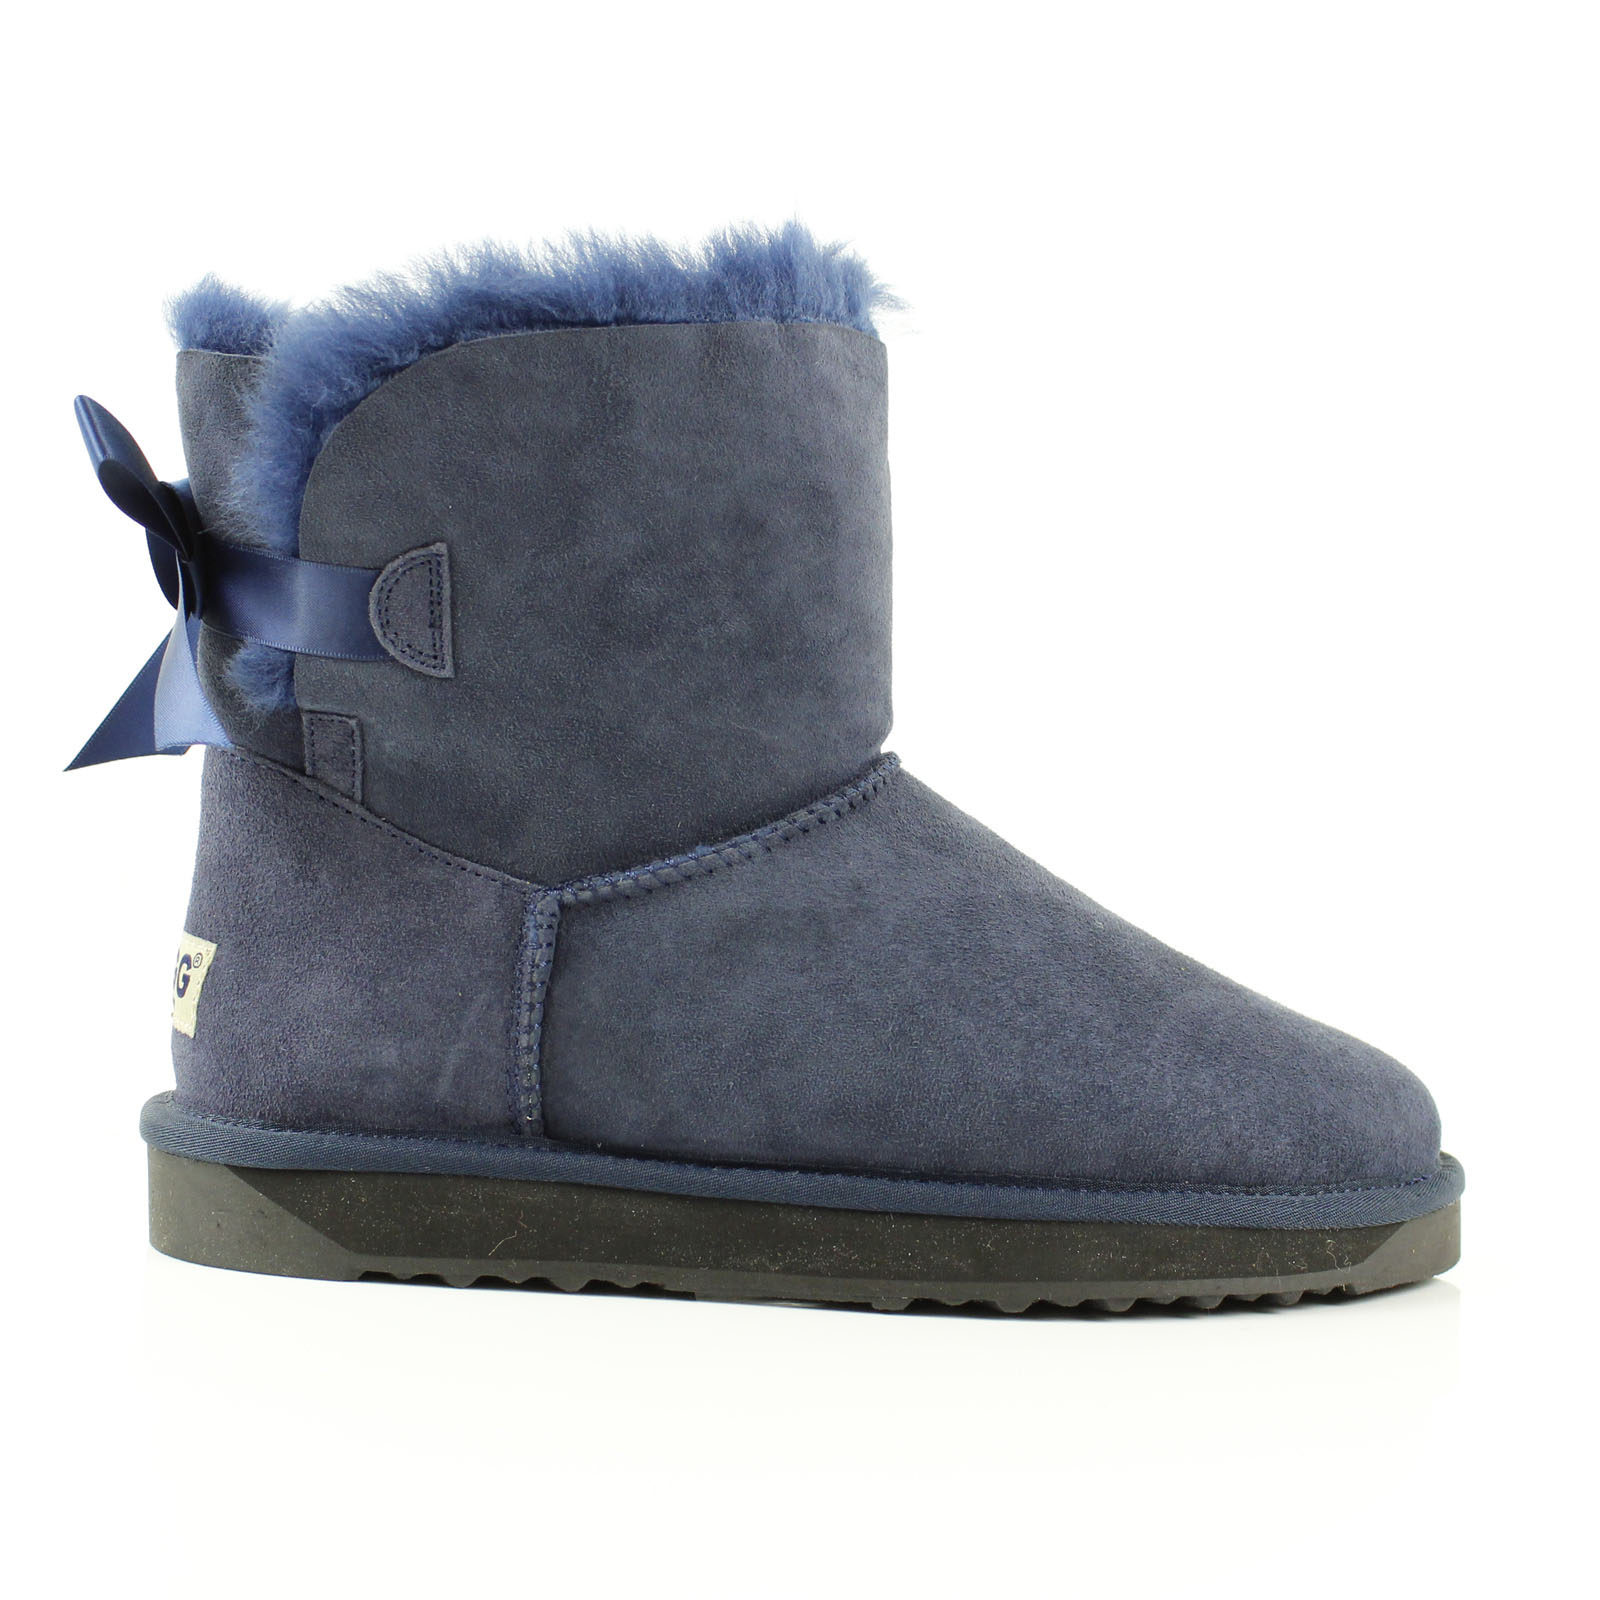 b0db9262694 Are Uggs Made From Real Sheepskin - cheap watches mgc-gas.com